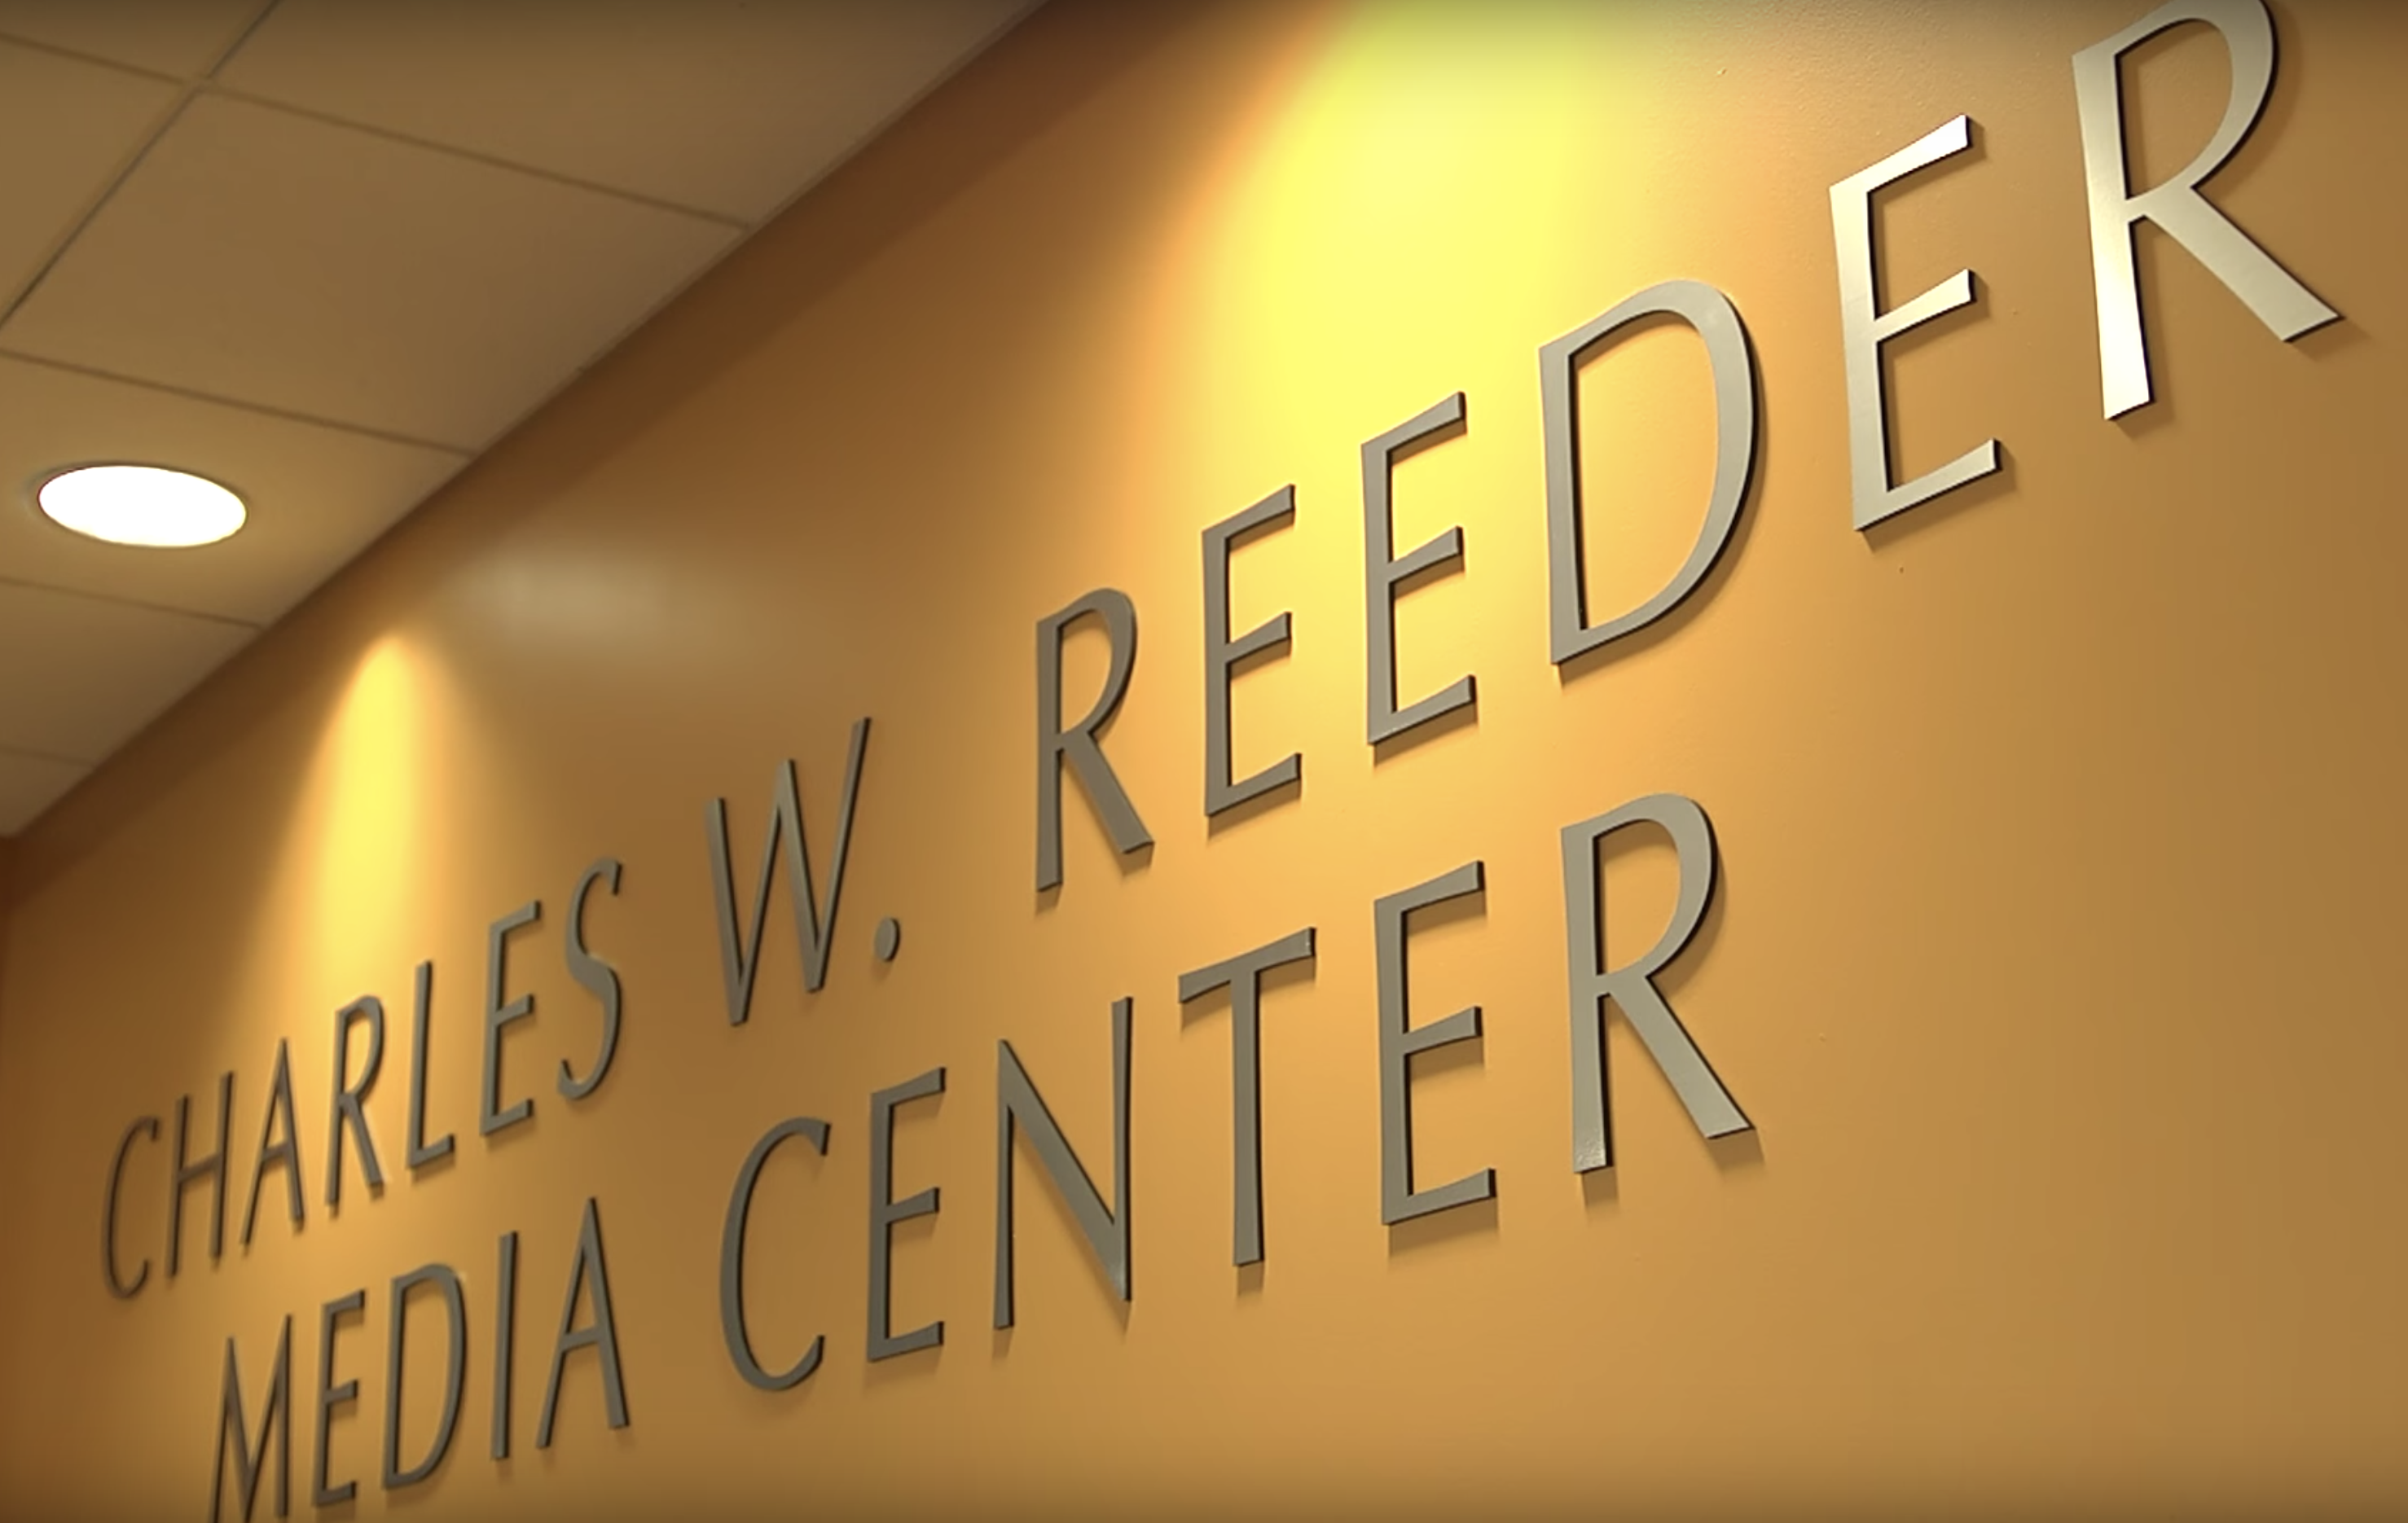 Charles W. Reeder Media Center | OPEN HOUSE!